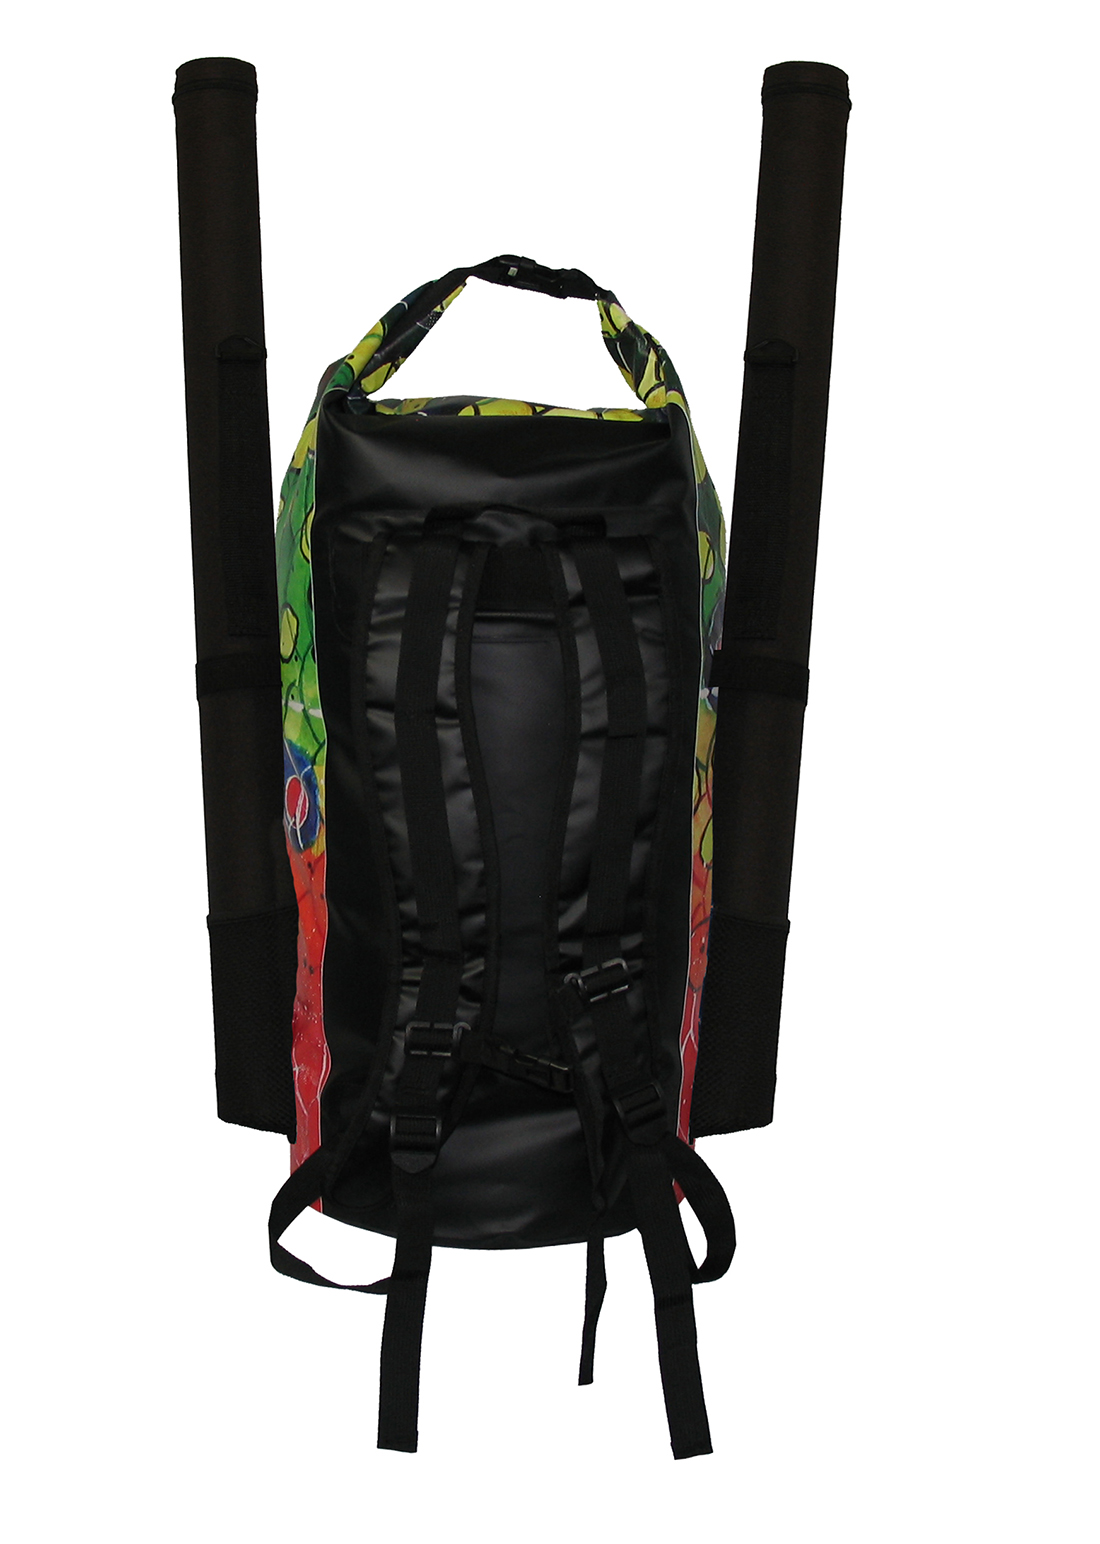 Trout Dreams Backpack Dry Bag, will leave yo dreaming of wild Trout and wild rivers, fly fishing backpacks women creating a outdoor river fashion.